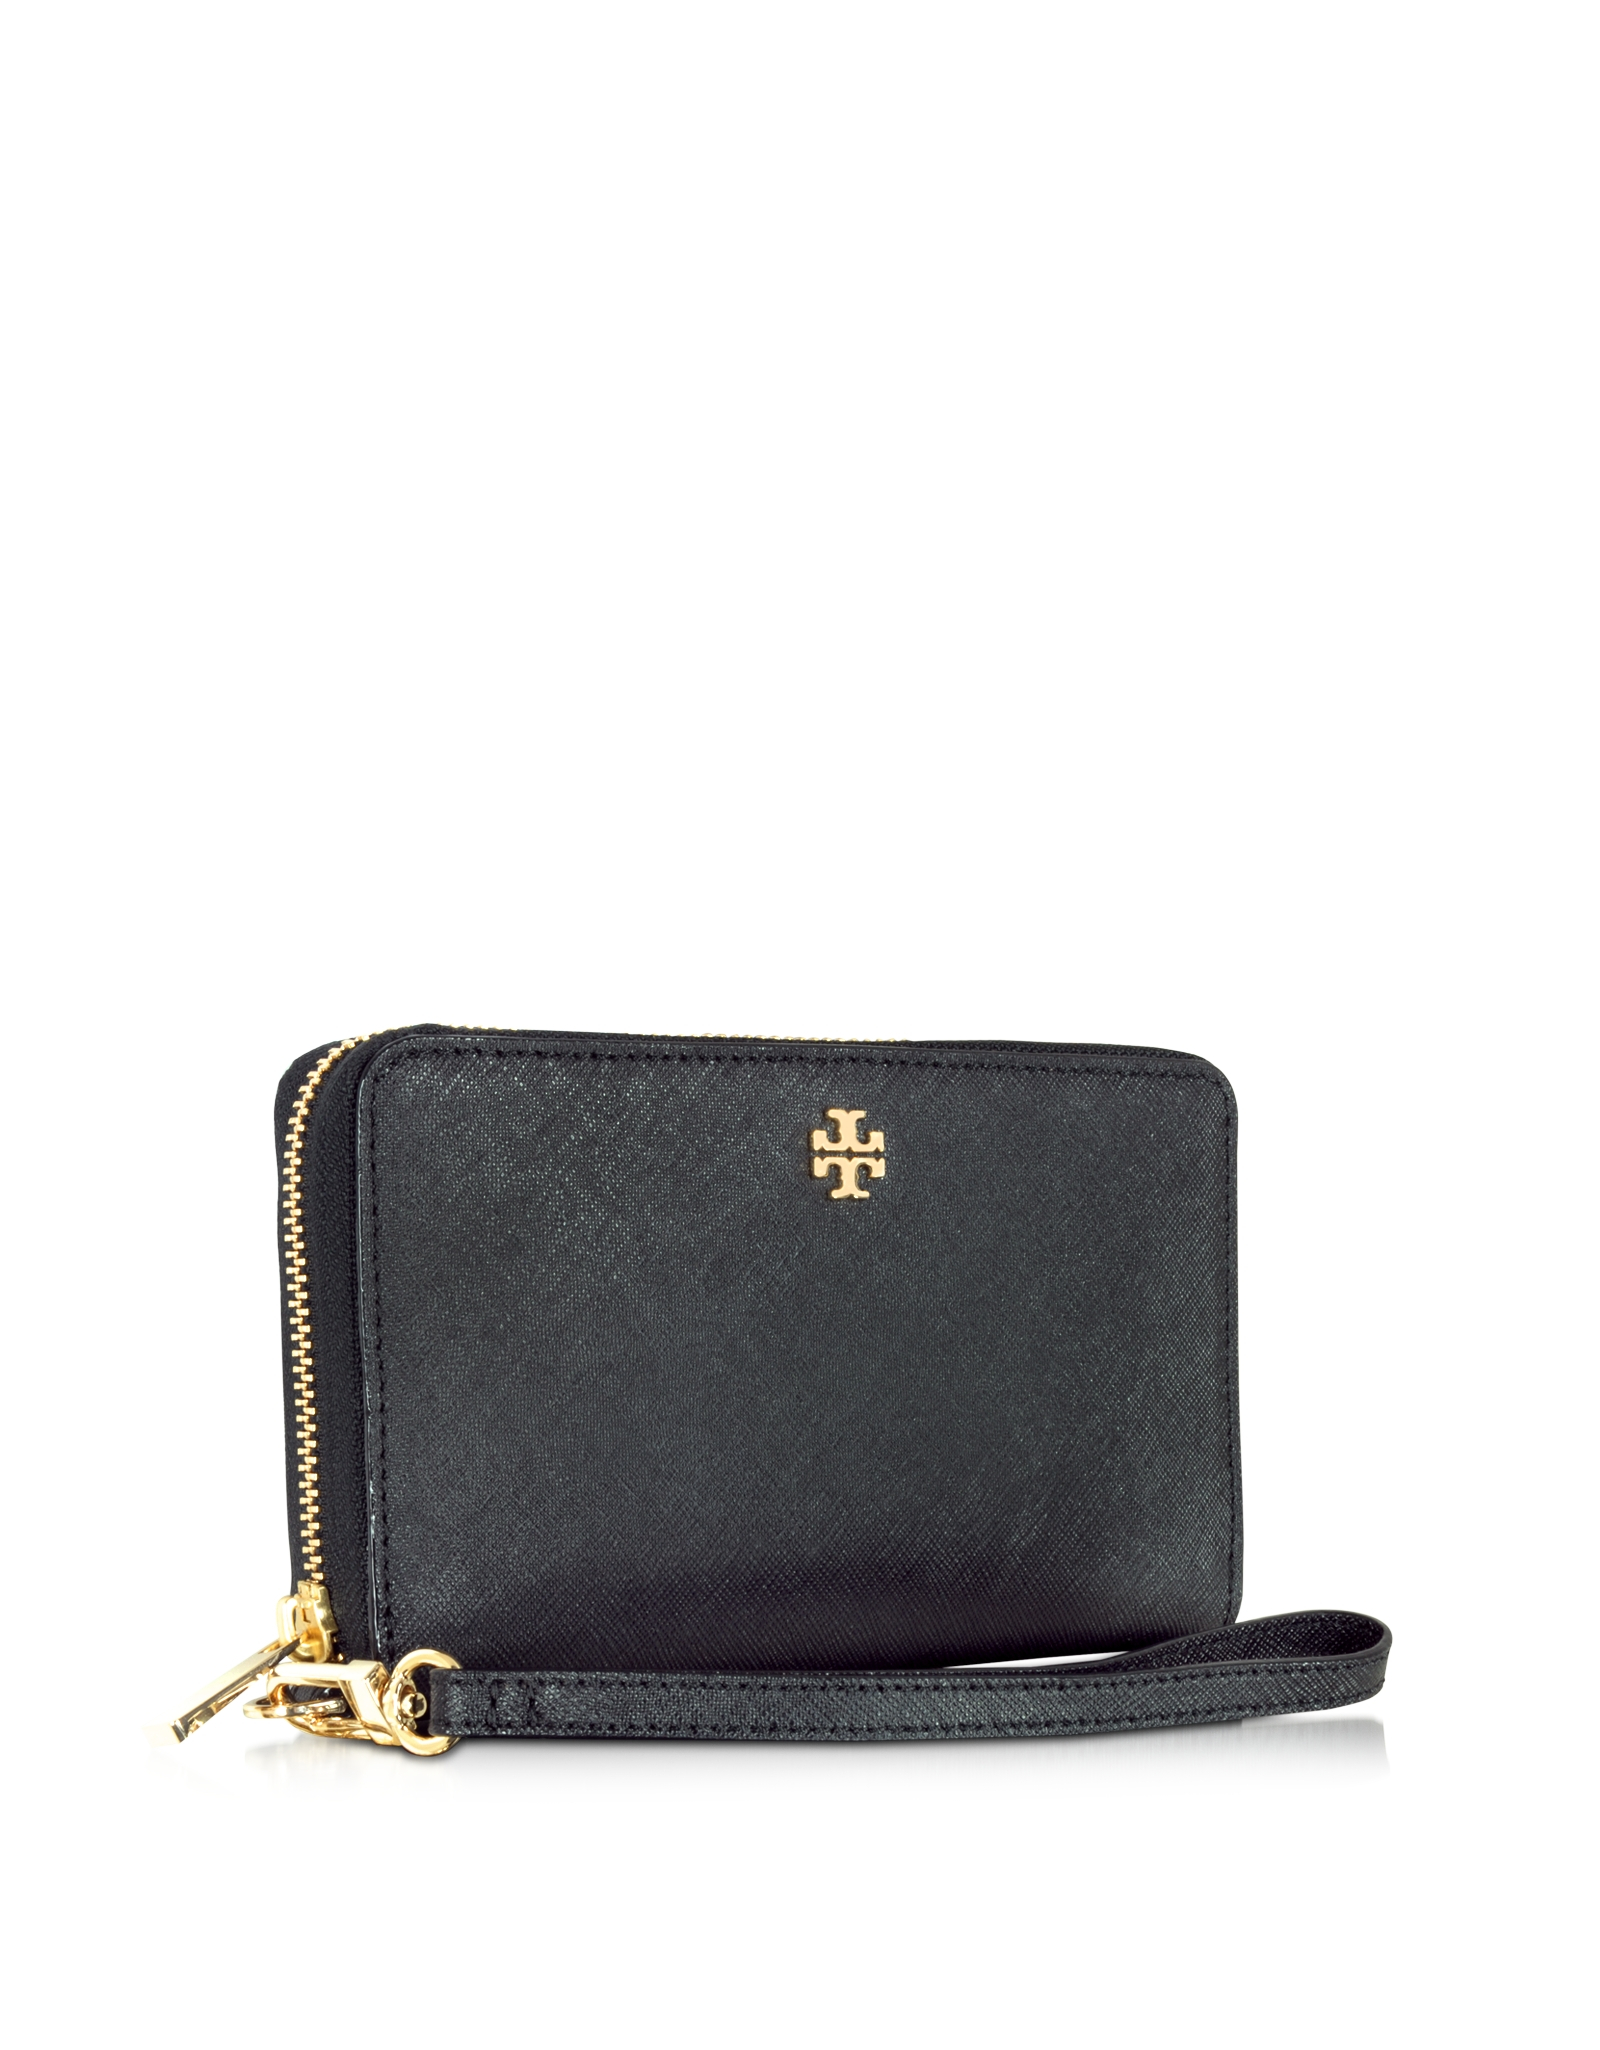 366c22d3d47 Tory Burch Robinson Zip-around Smartphone Wristlet in Black - Lyst